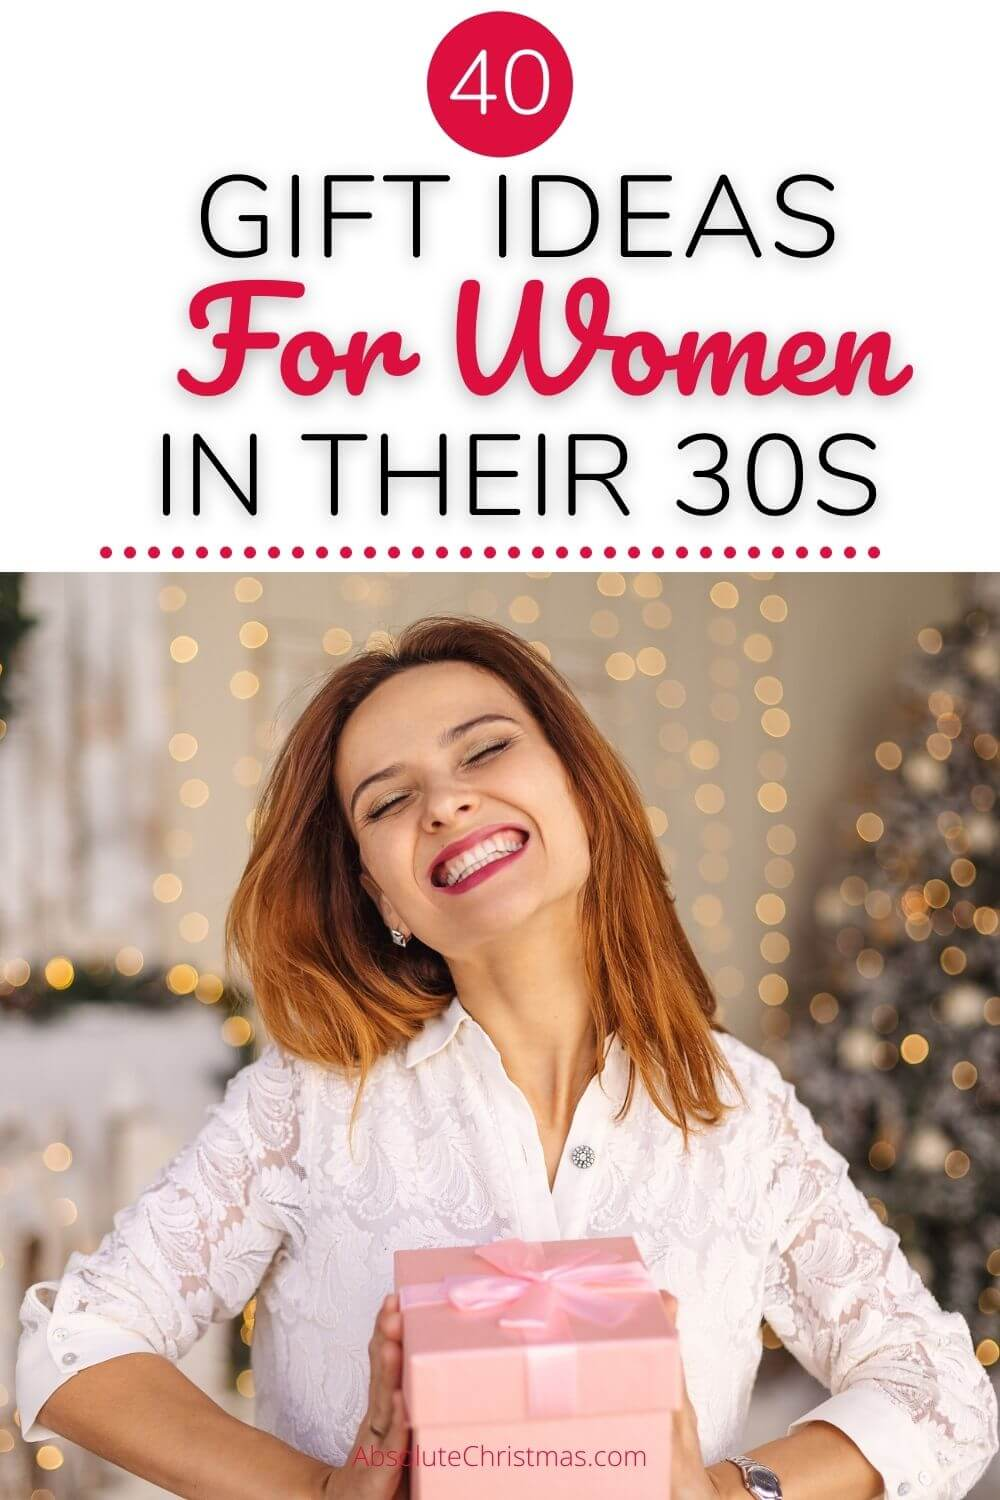 Gifts for Women In Their 30s - Gift Guide Woman 30s